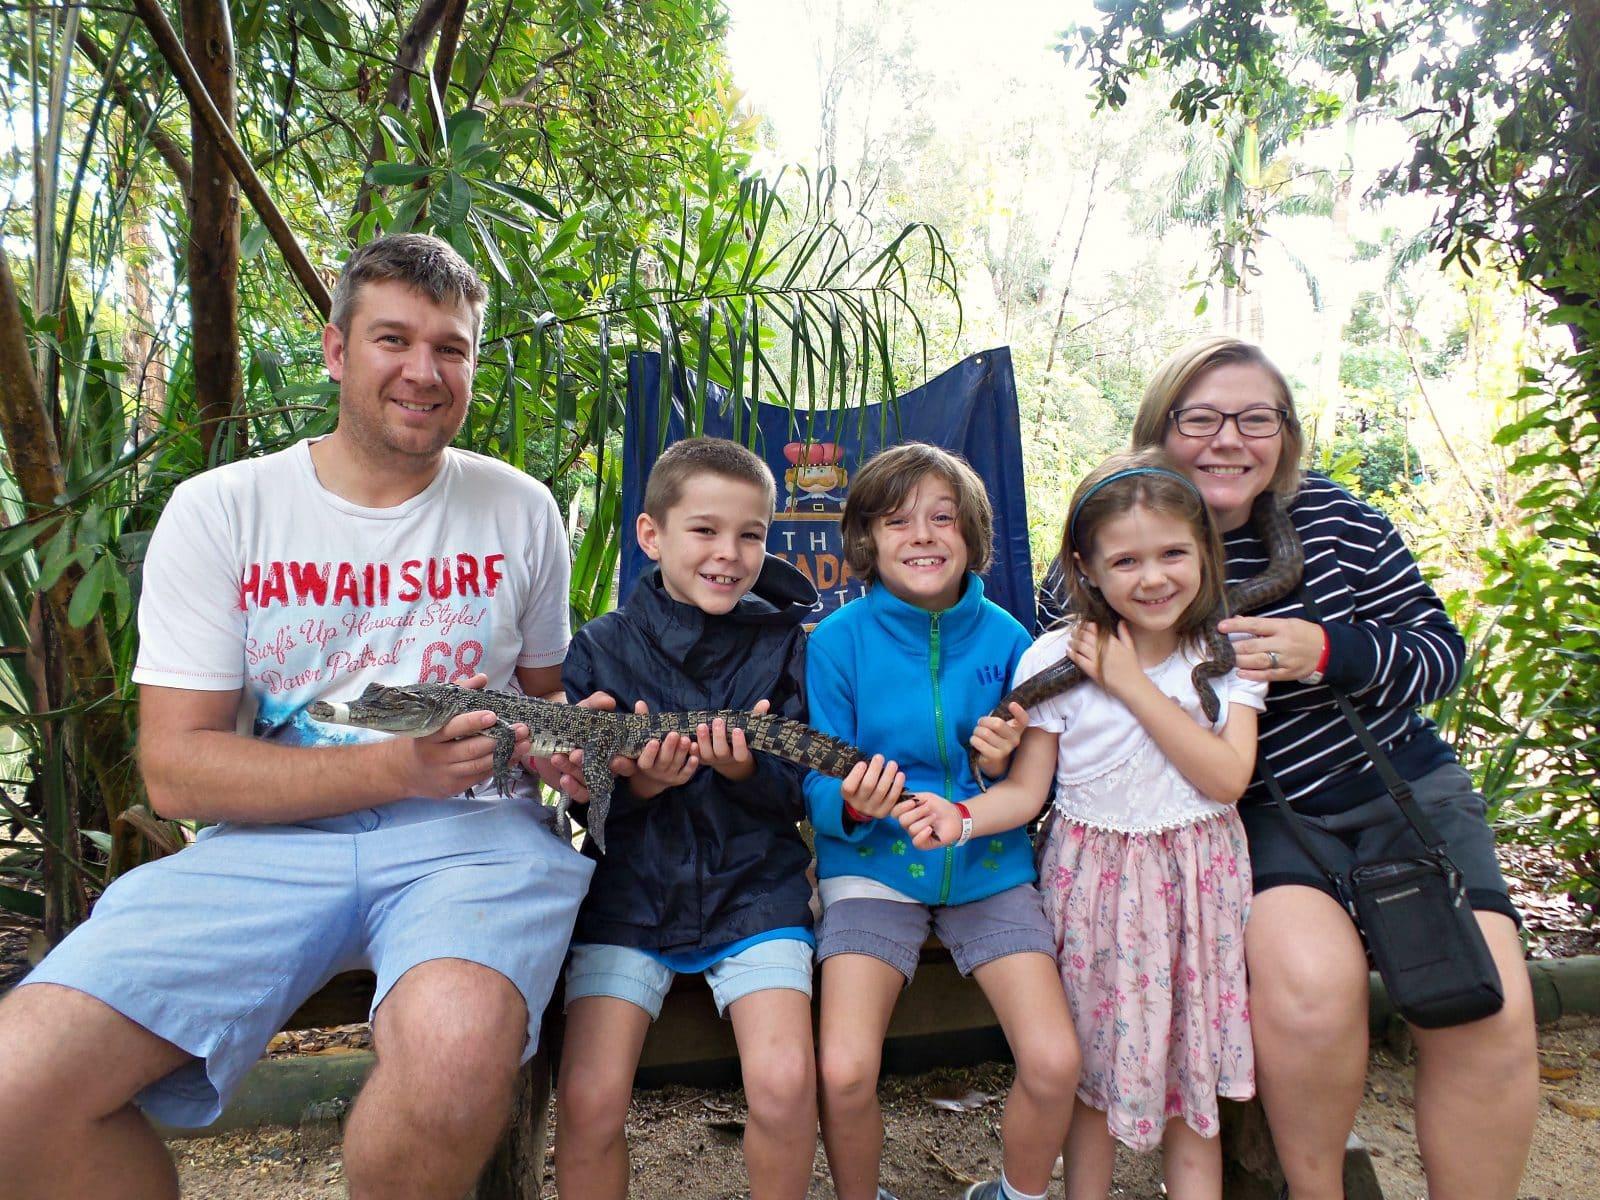 Byron Bay With Kids: Things to do in Byron Bay for all the family